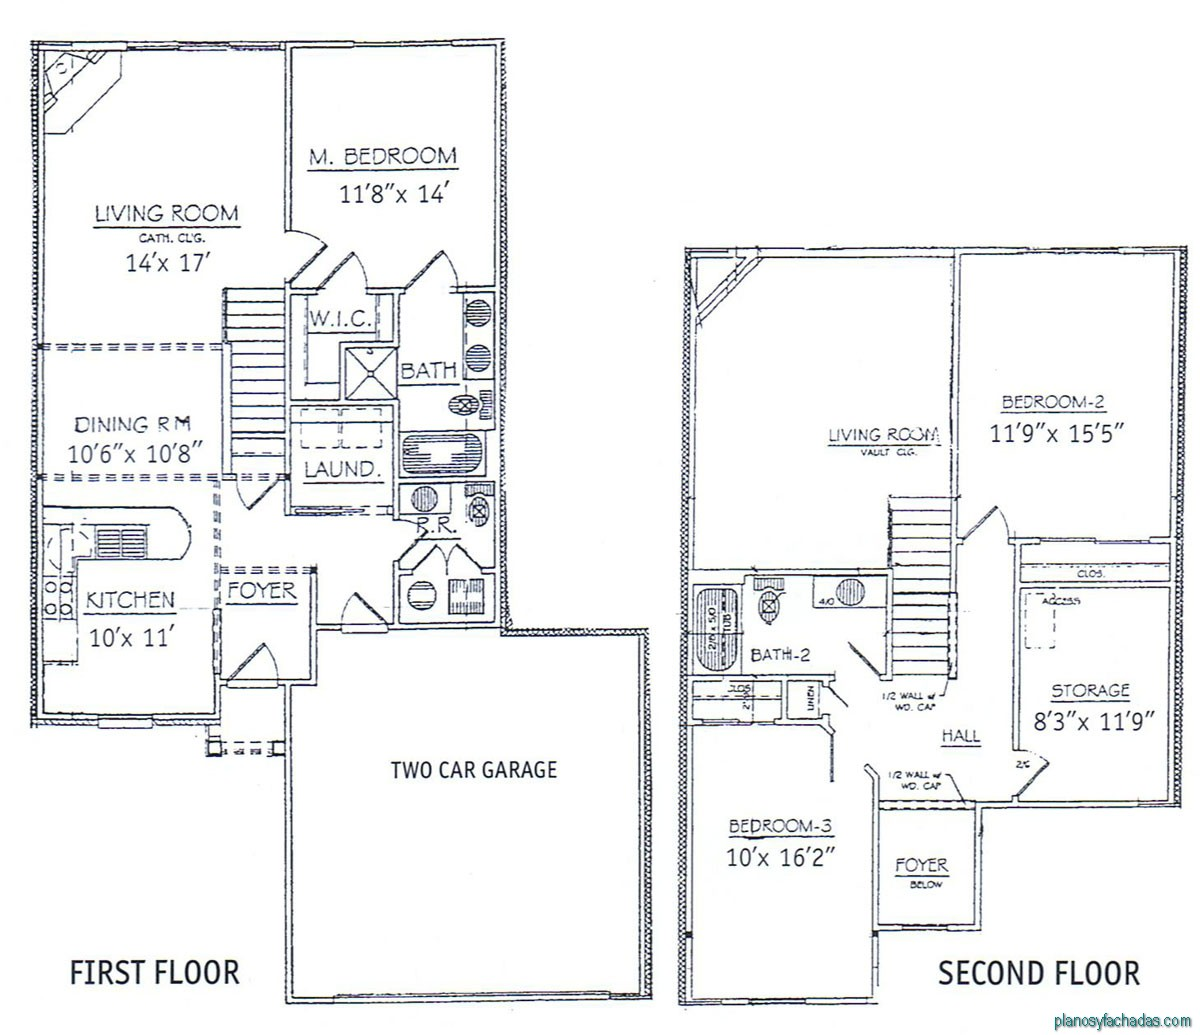 15 planos de casas peque as de dos pisos planos y for 3 bed 2 bath ranch floor plans